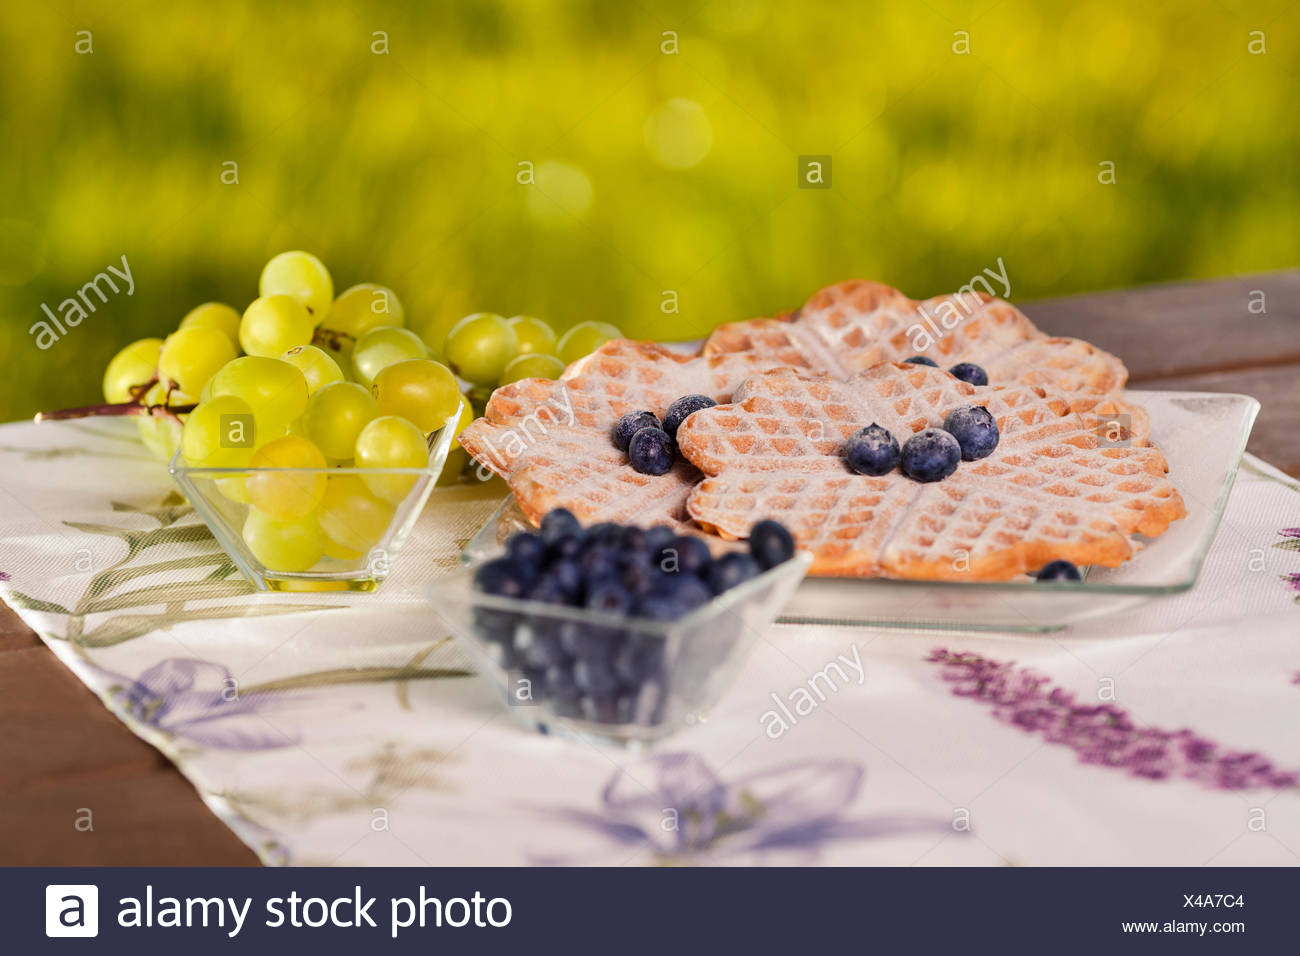 Close up of belgian waffles with fruits outdoors. Debica, Poland - Stock Image